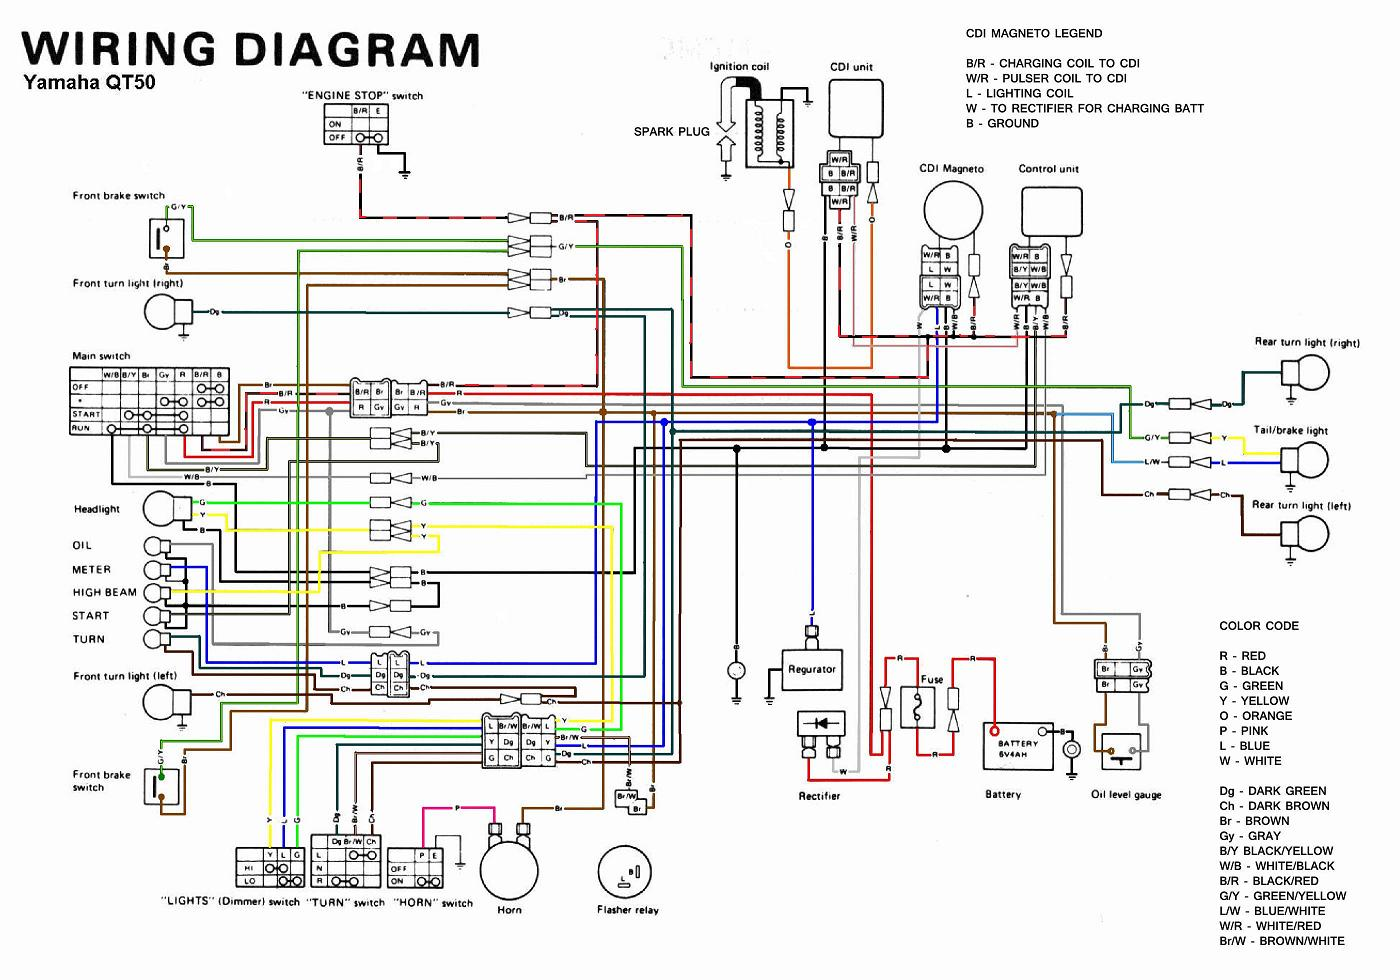 Yamaha QT50 Wiring Diagram qt50 wiring diagram dt250 wiring diagram \u2022 free wiring diagrams 1975 dt 175 wiring diagram at bayanpartner.co